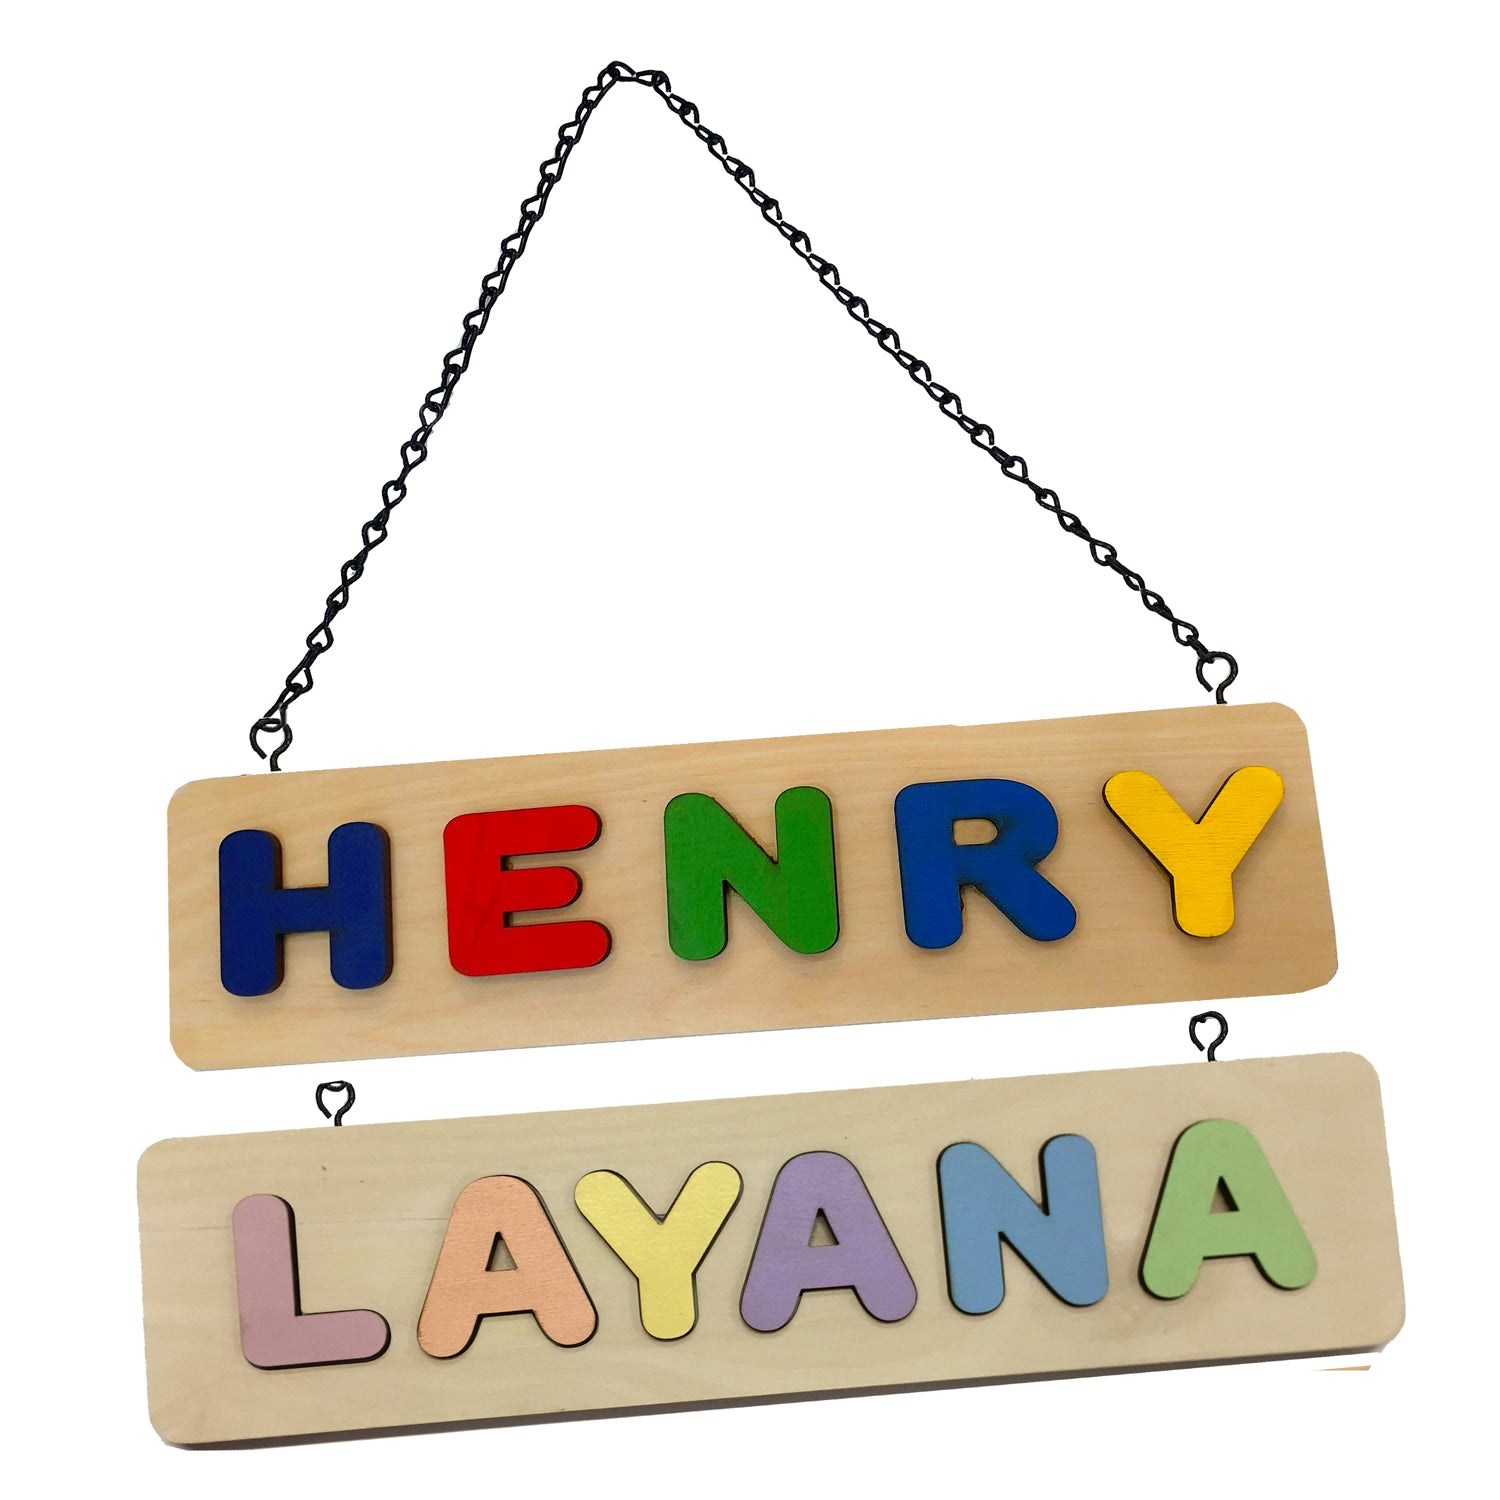 Kids Room Hanging Sign Door Name Puzzle  - Single Name Puzzle Up to 12 Letters